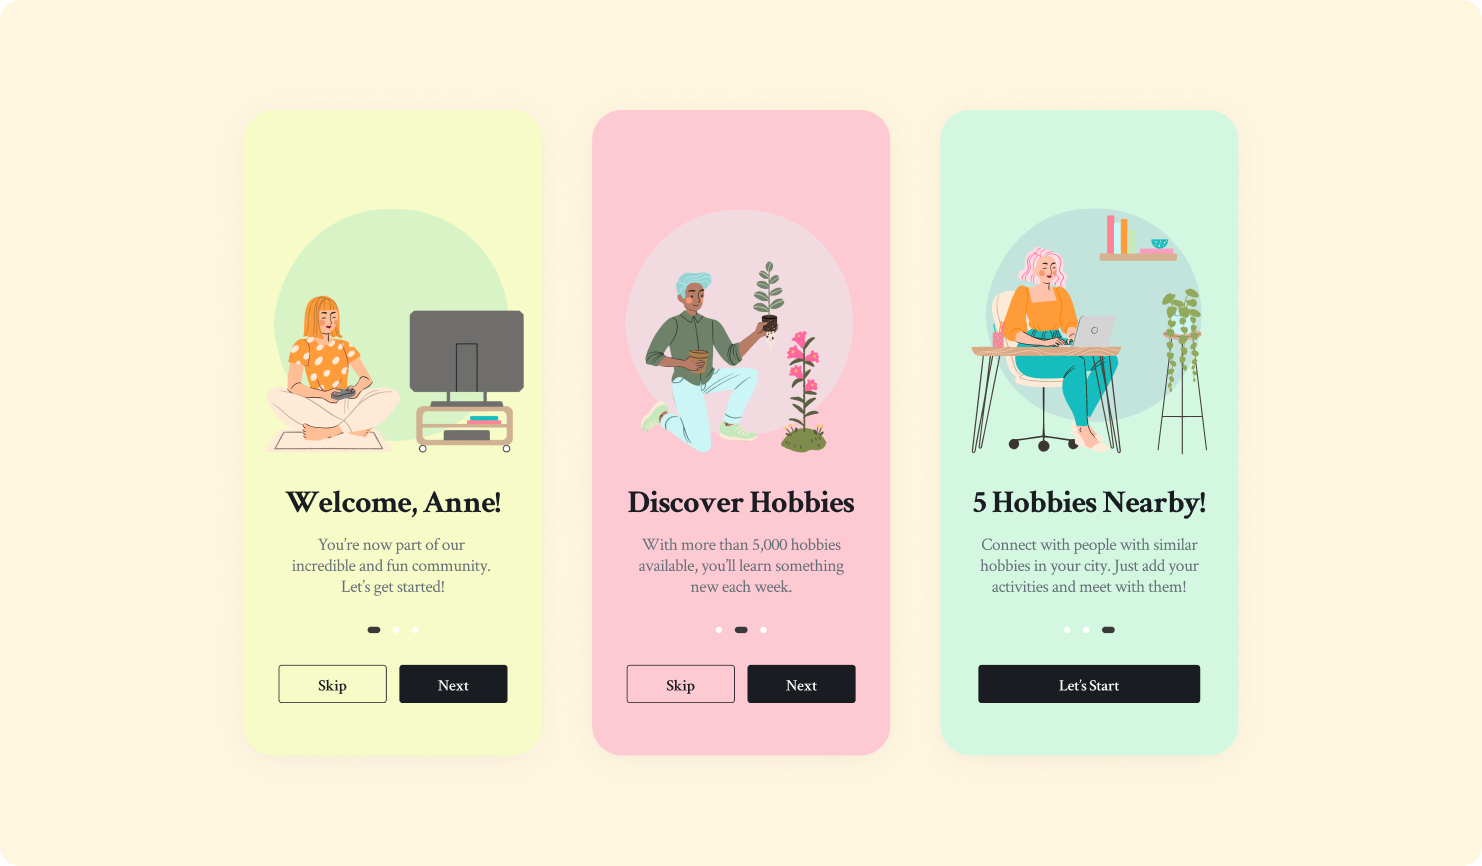 Three onboarding screens with illustrations and welcome message